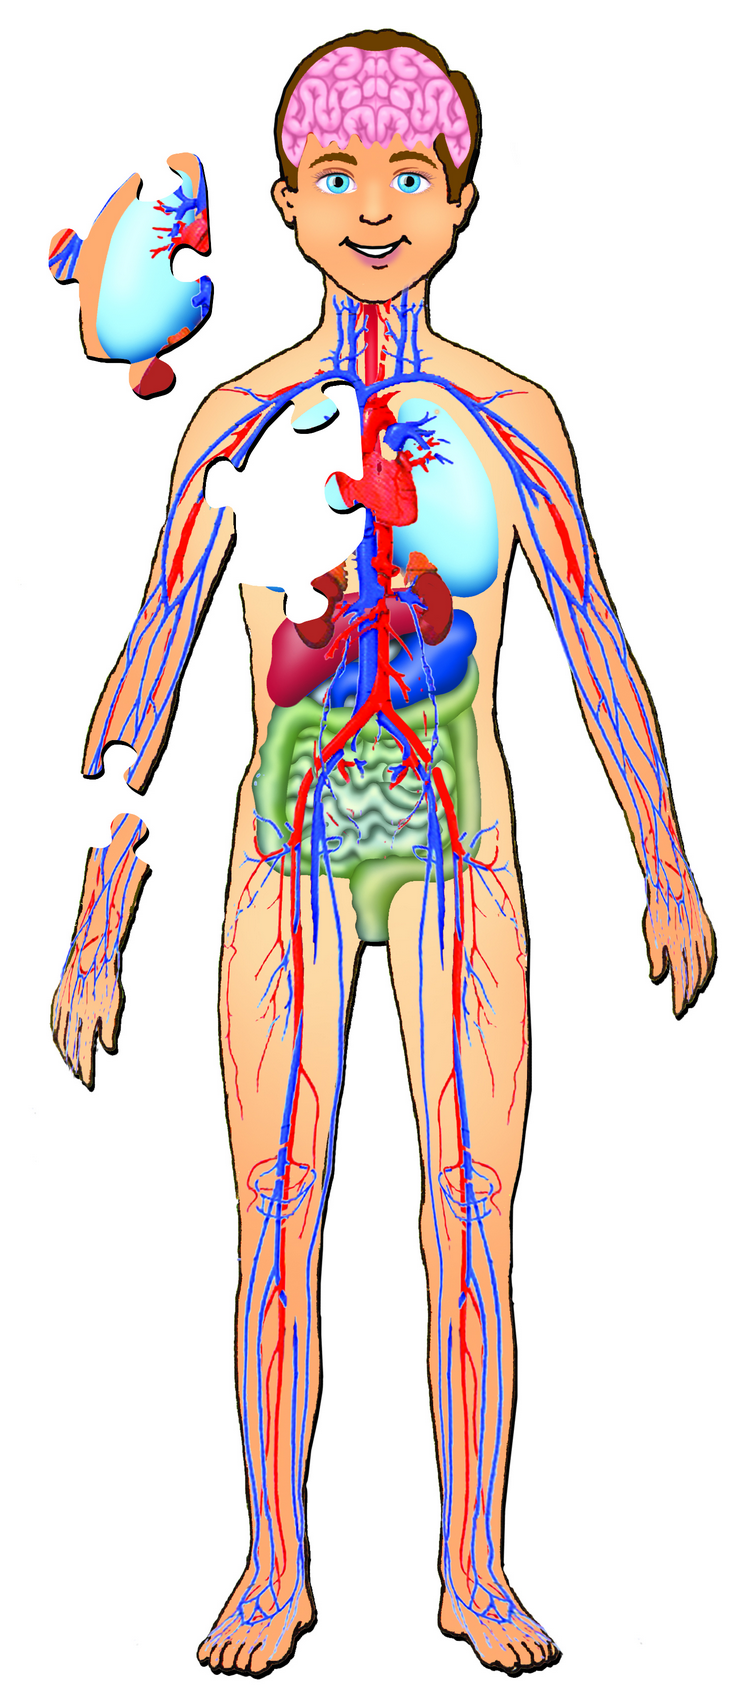 Human Body With Organs